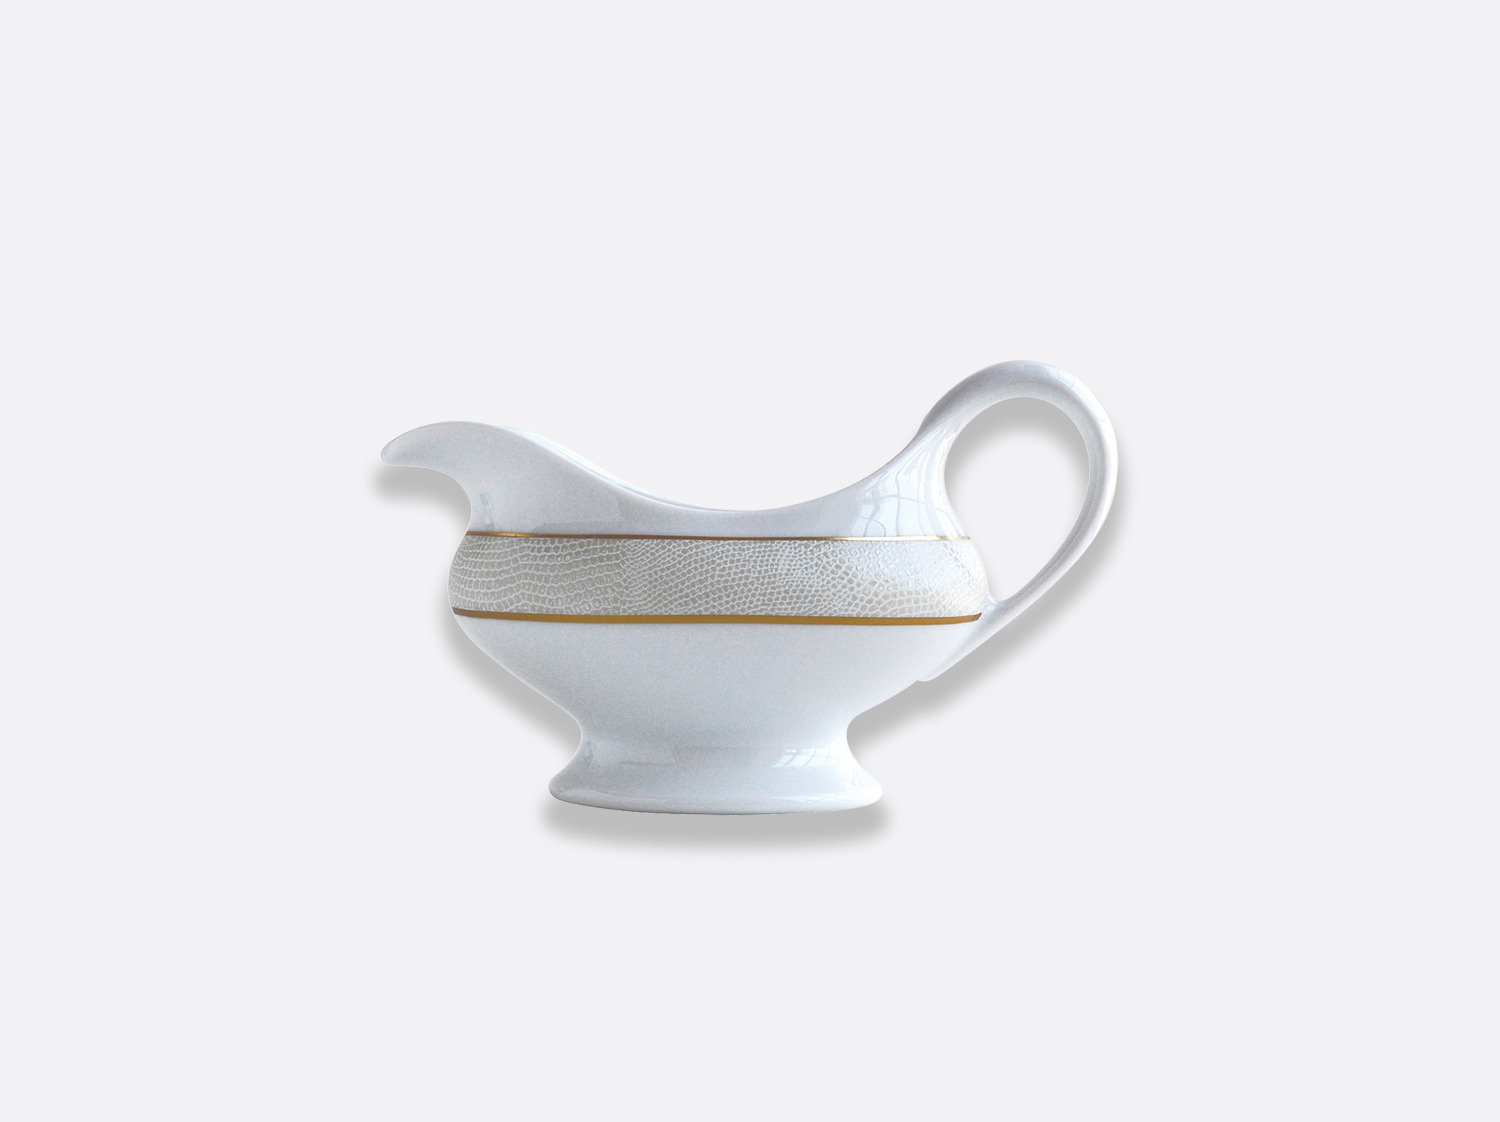 China Gravy boat of the collection Sauvage Or Blanc | Bernardaud